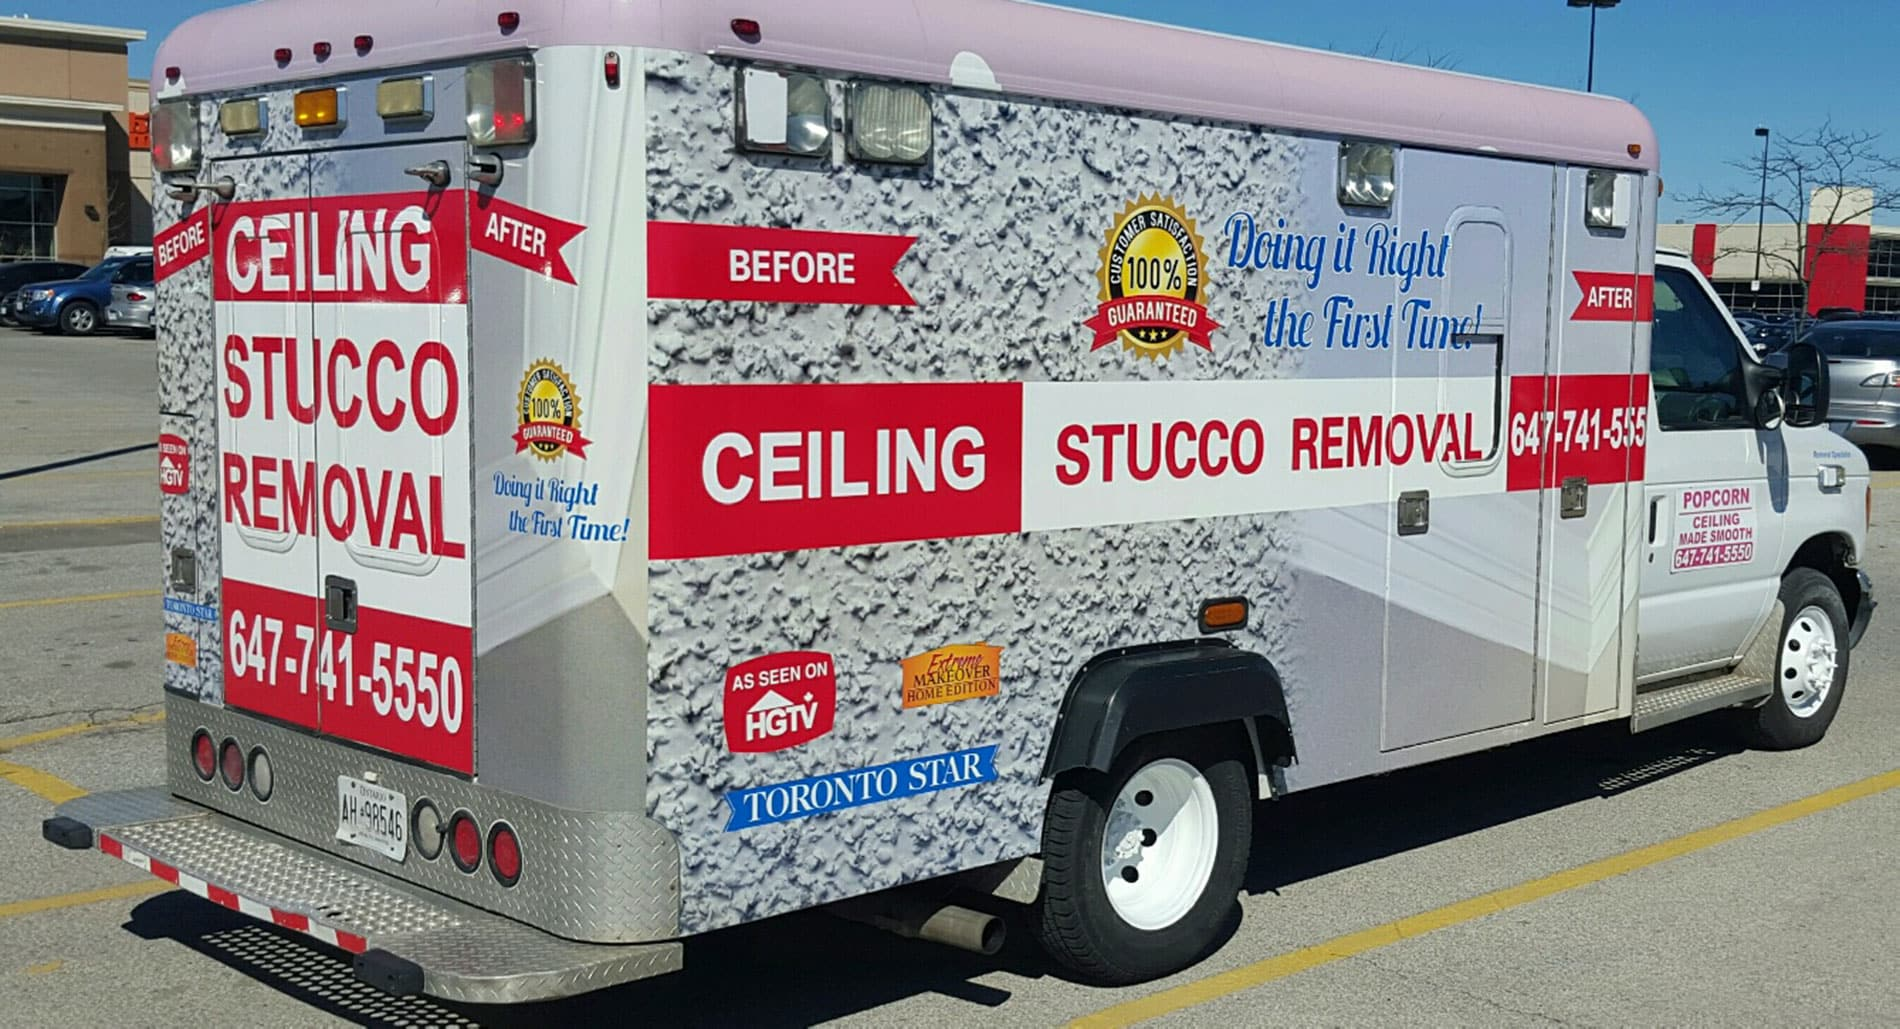 ceiling stucco removal truck